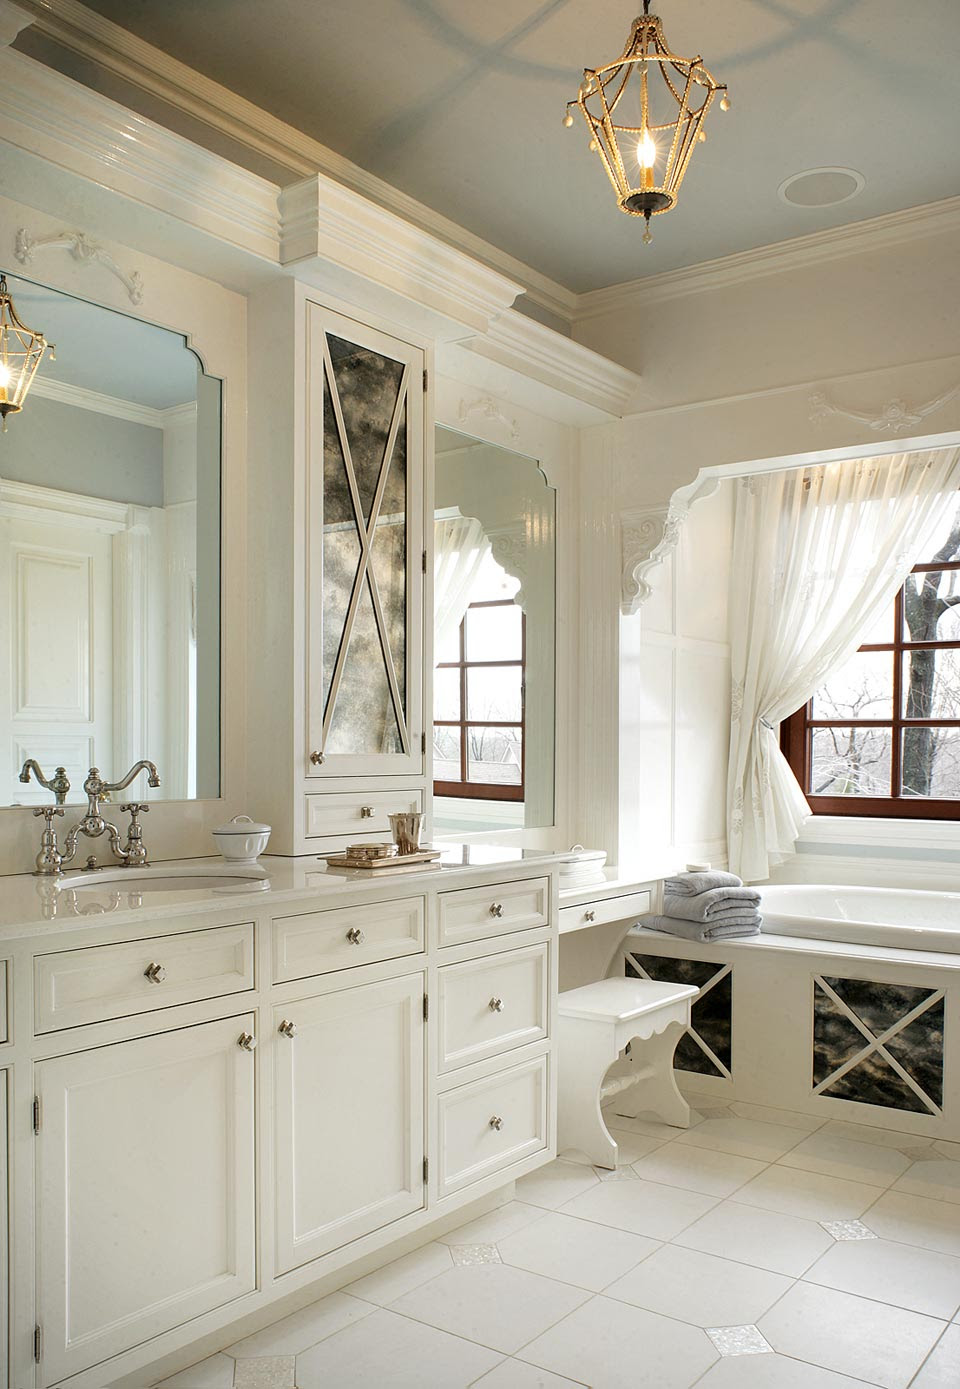 11 Awesome Traditional Bathroom Designs - Awesome 11